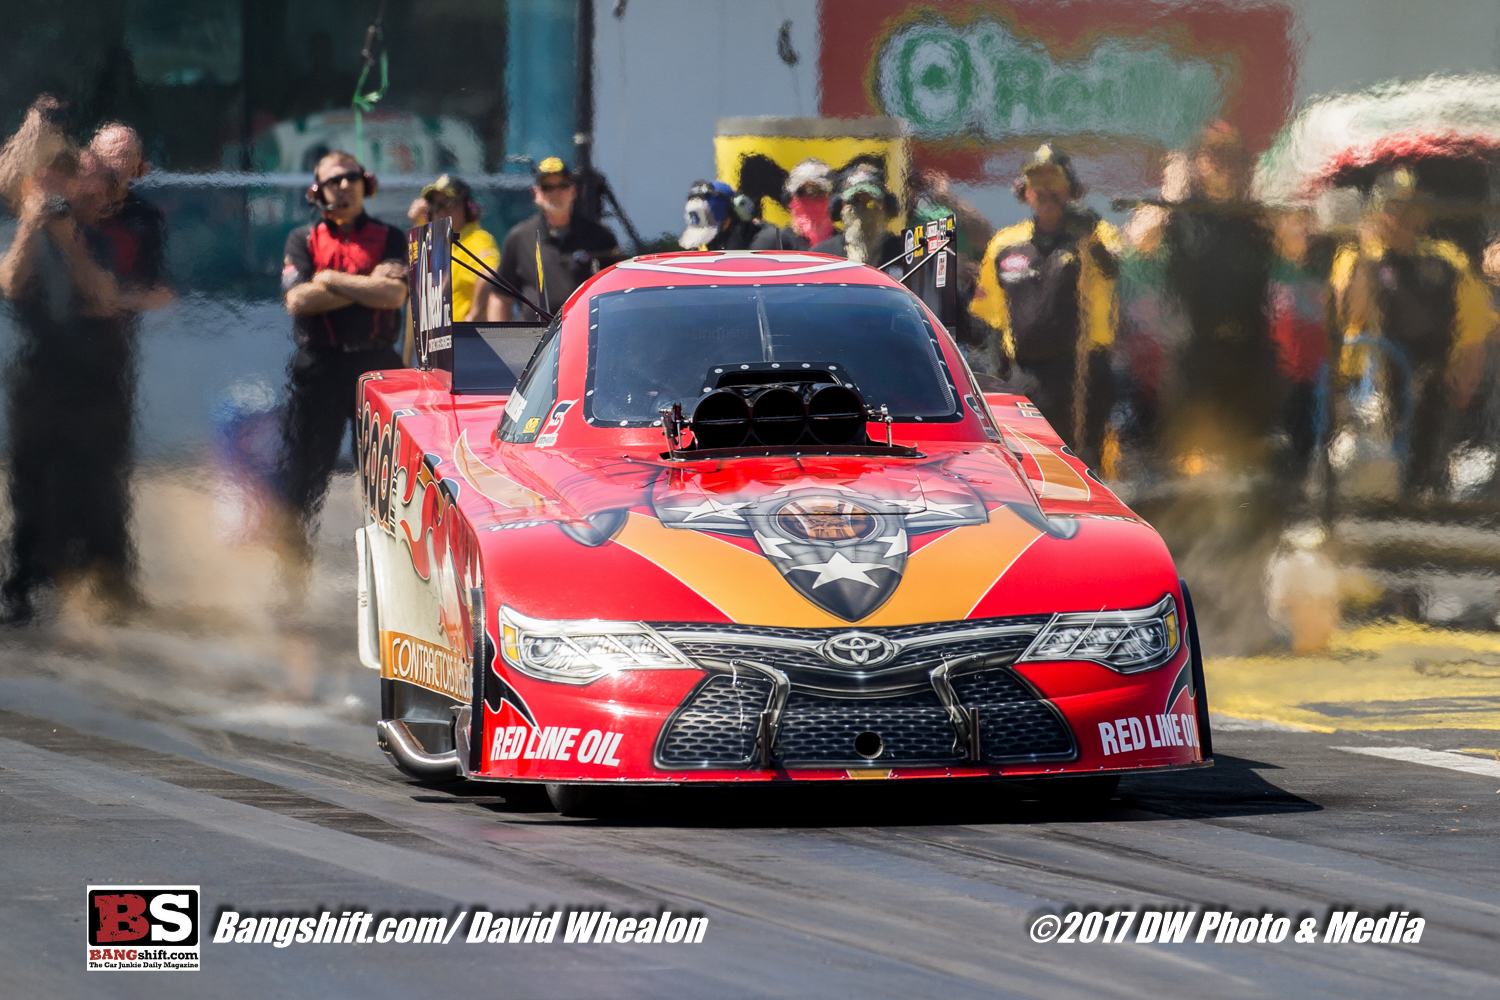 2017 NHRA Gatornationals Coverage: Nitro Photos From The Top Fuel And Funny Car Ranks